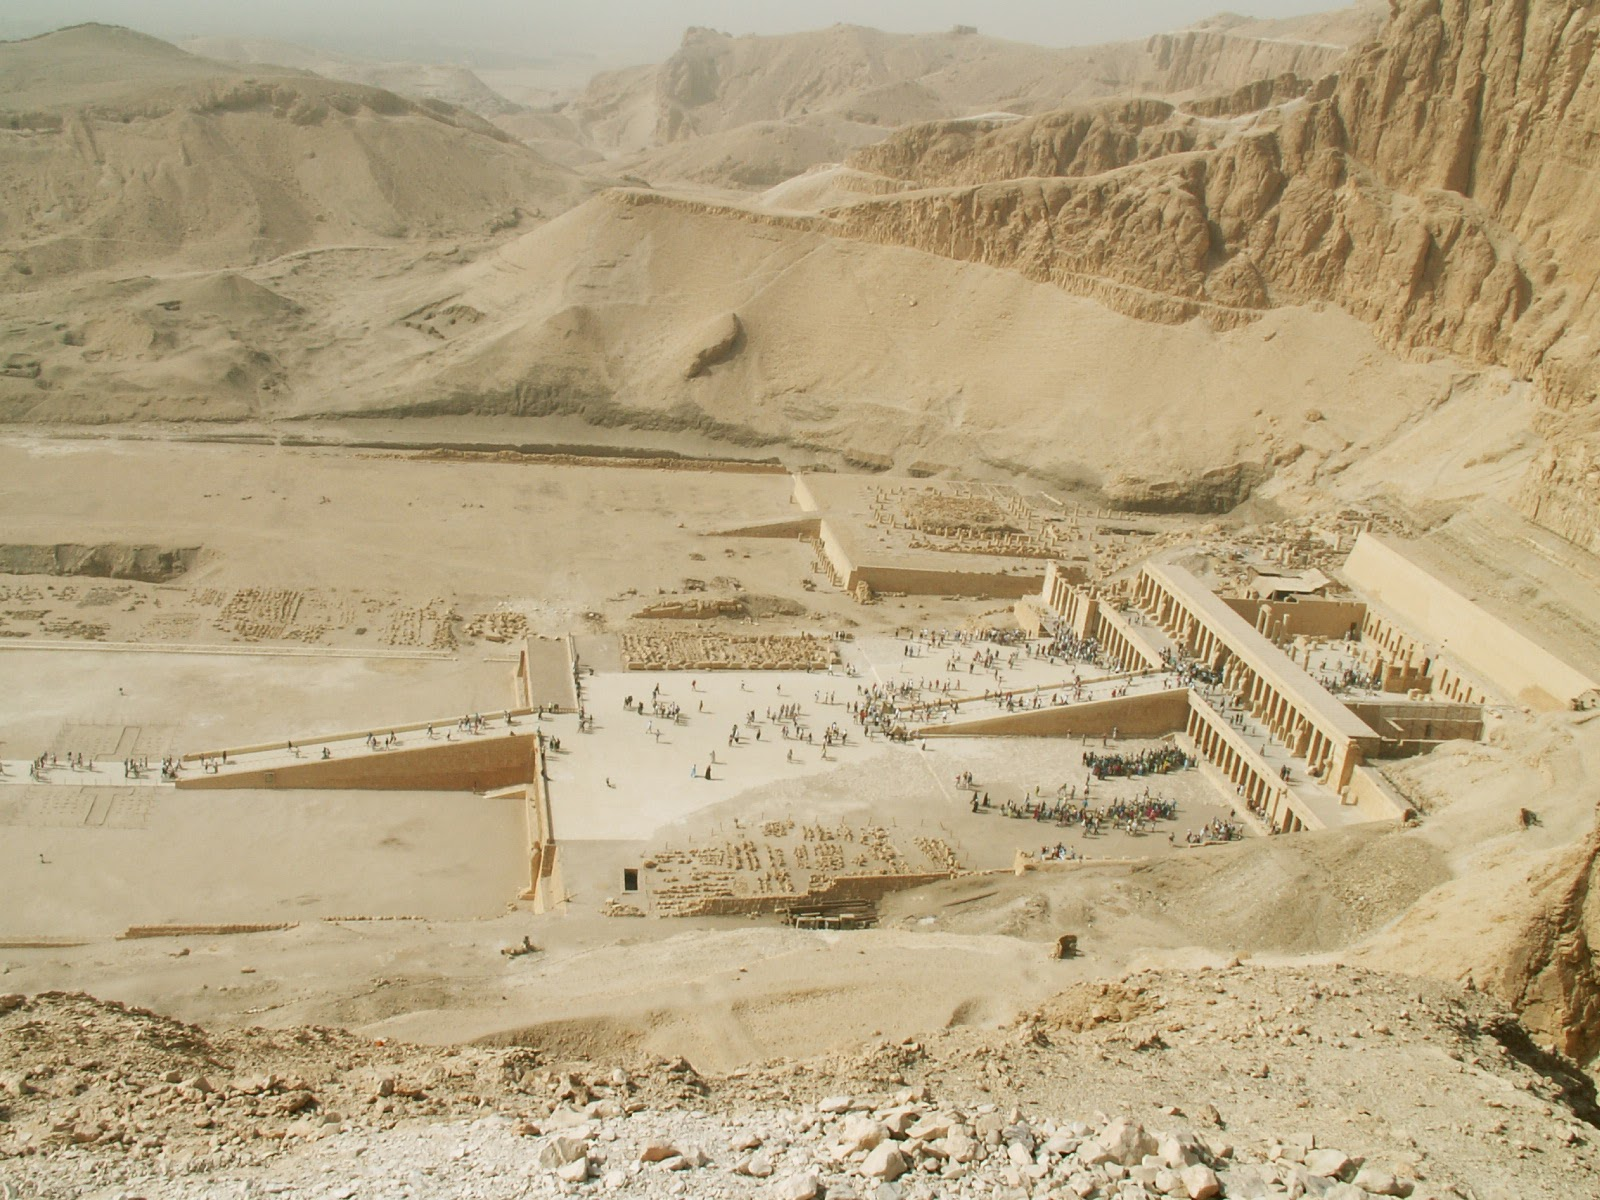 valley of the kings A view of the valley of the kings, the burial place of rulers from egypt's new kingdom period (ca 1550-1070 bc), including merenptah four foundation deposits in a box like shape have been discovered in the valley of the kings in egypt they may indicate the presence of a nearby undiscovered tomb.